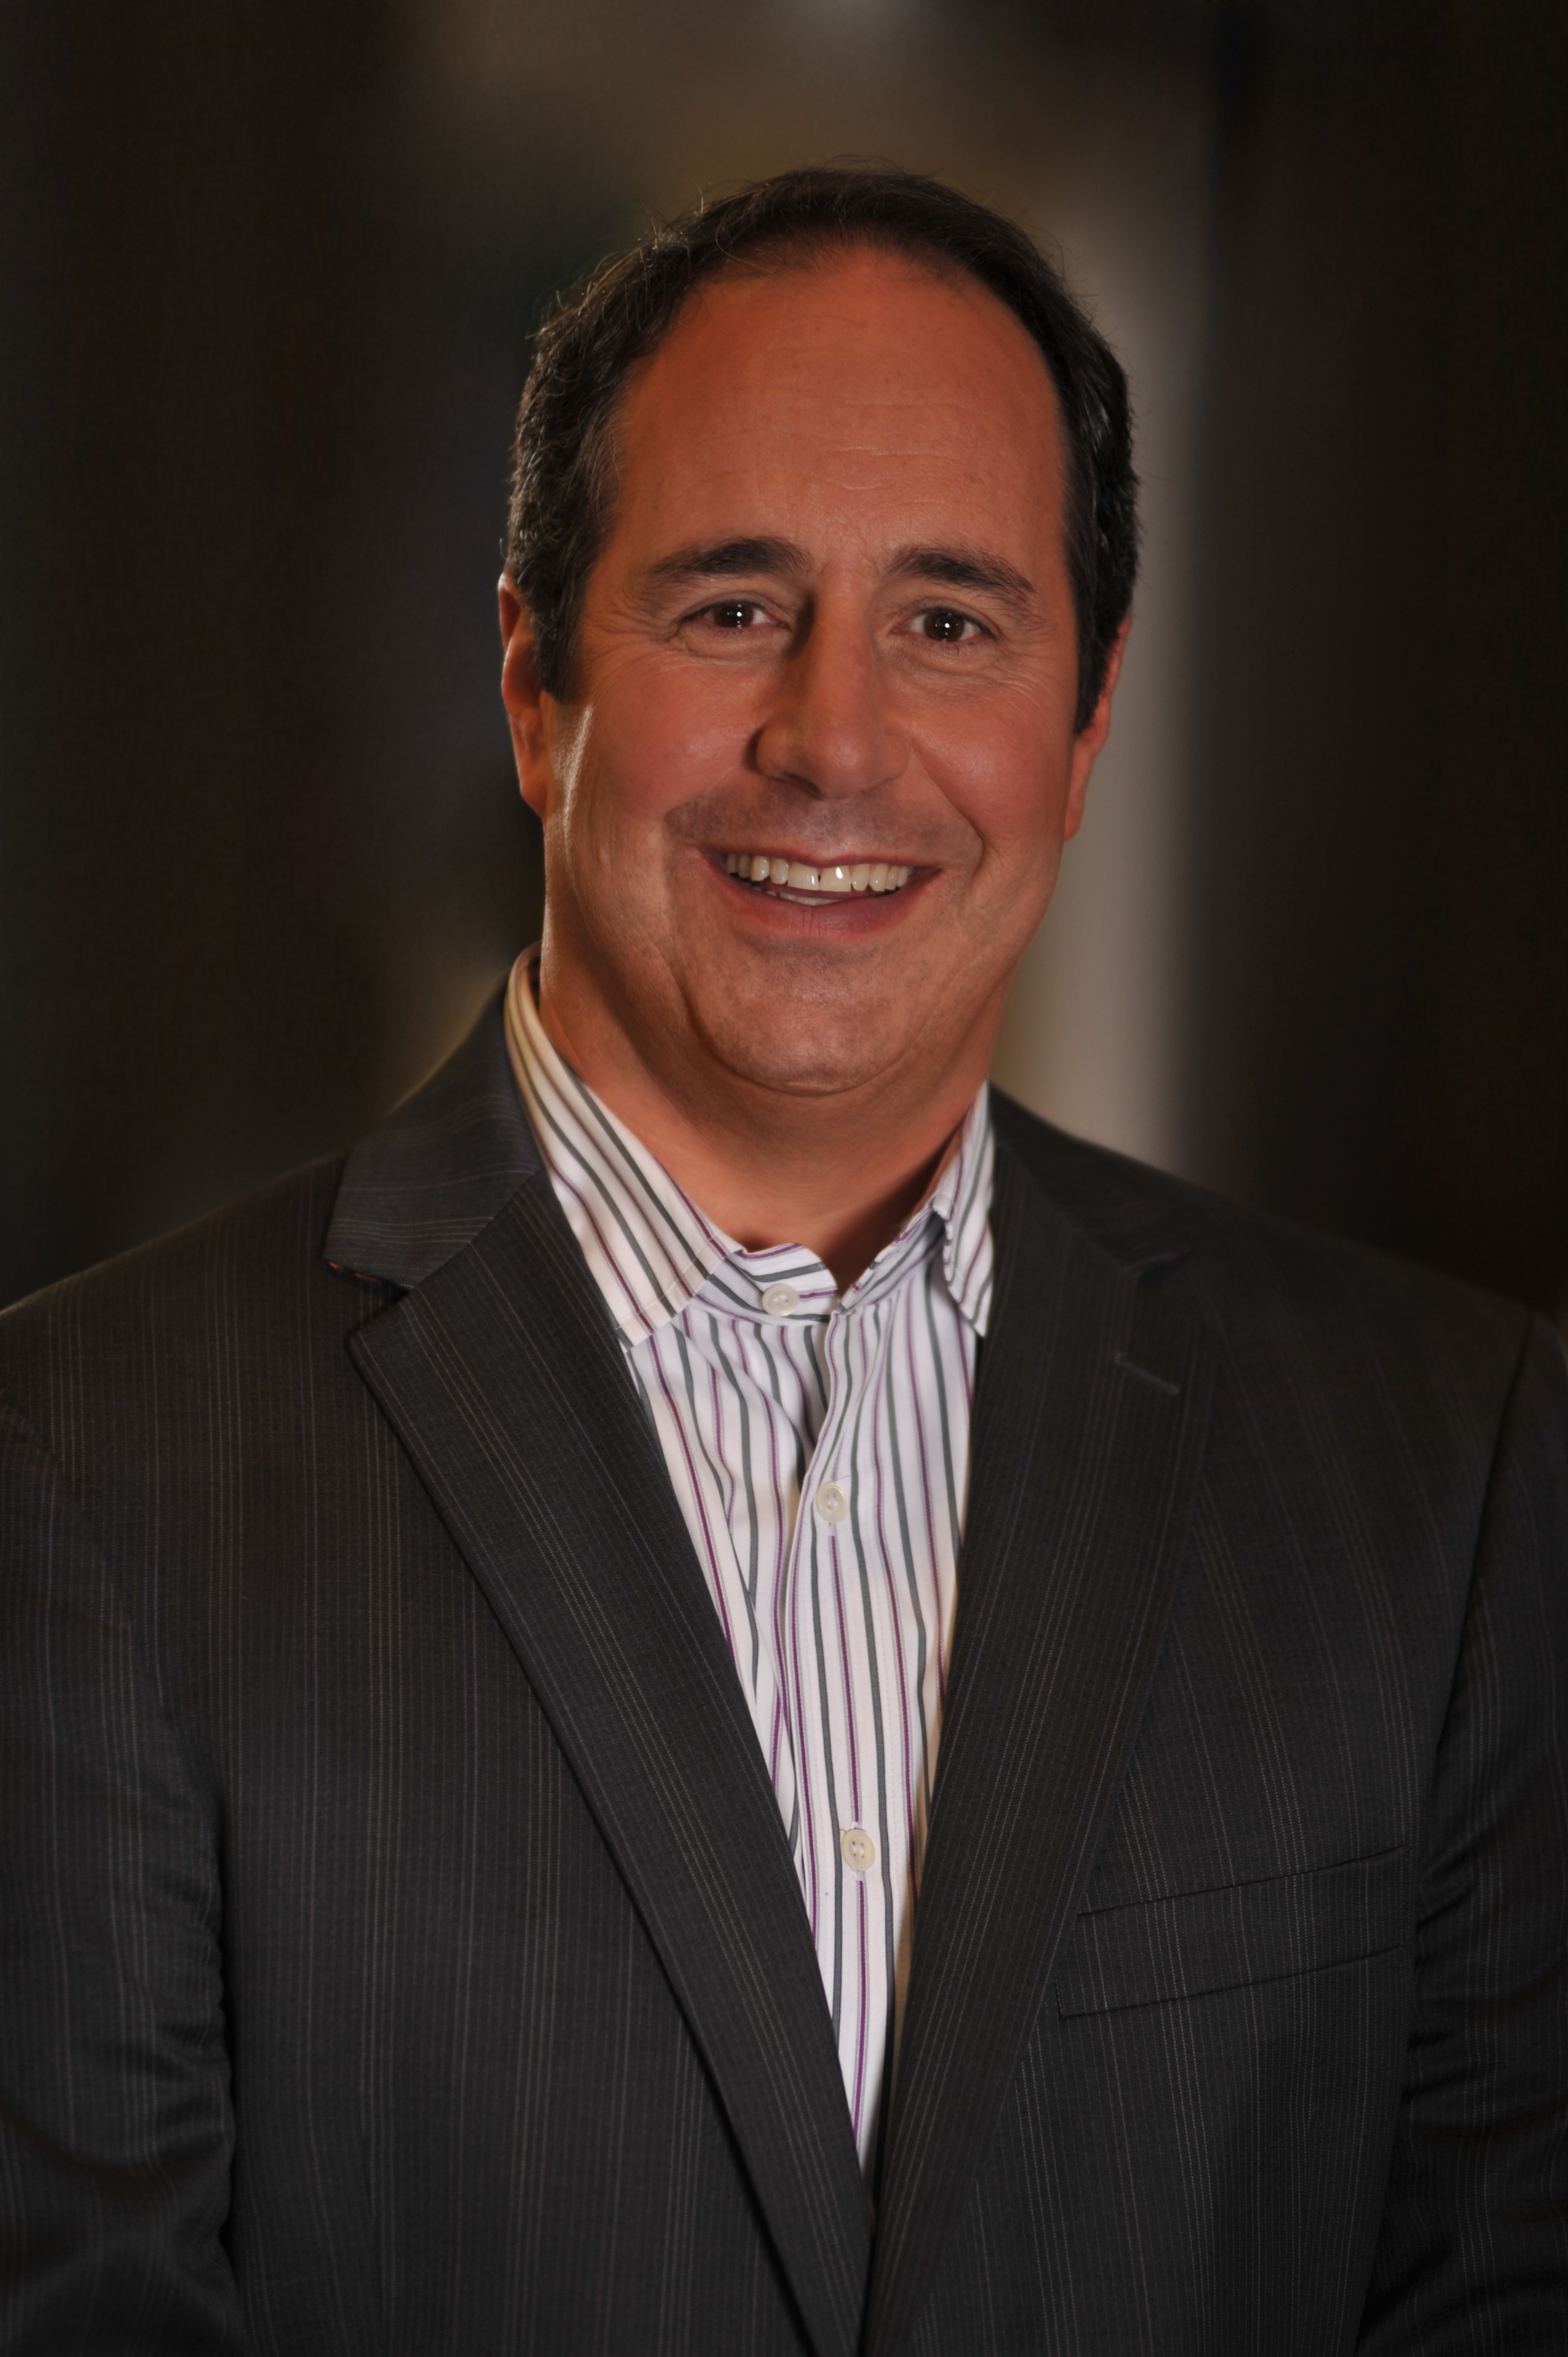 Scott Missad, the new owner of Gene Juarez Salons and Spas, with nine locations and an academy in Seattle, Washington.